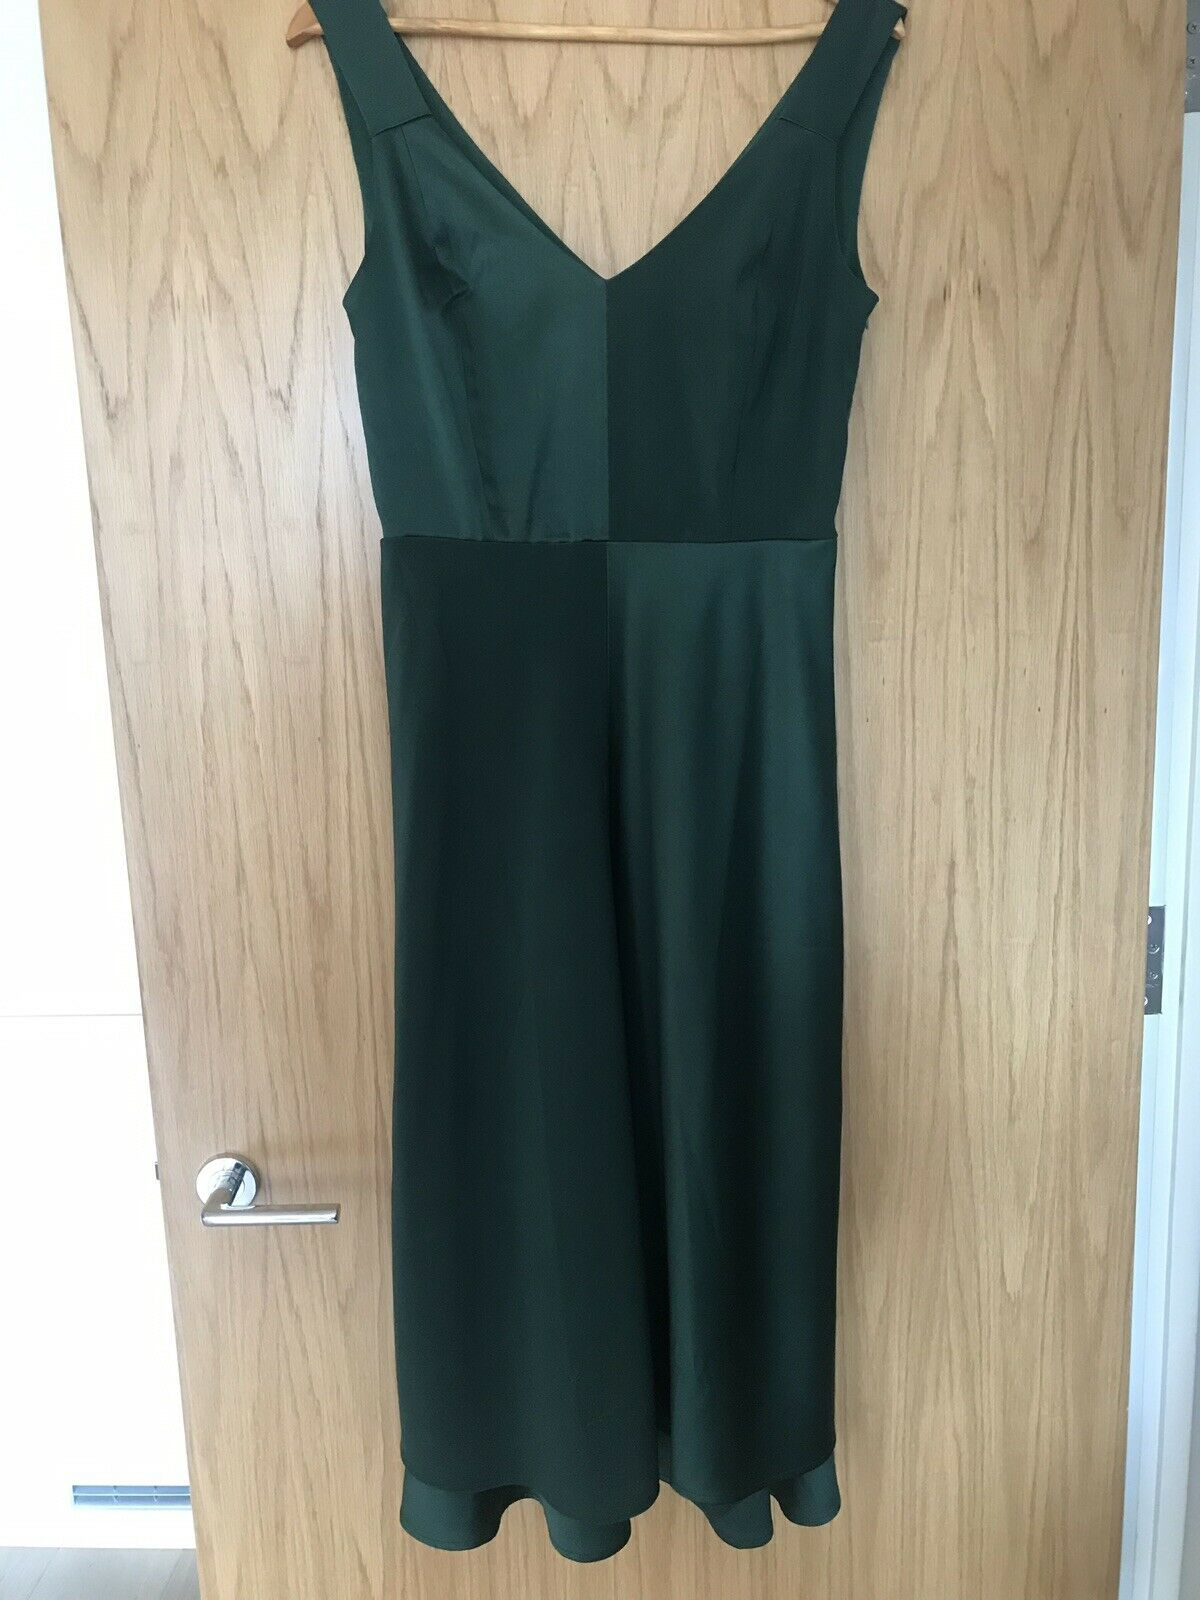 Atterley Green Dress 10 12